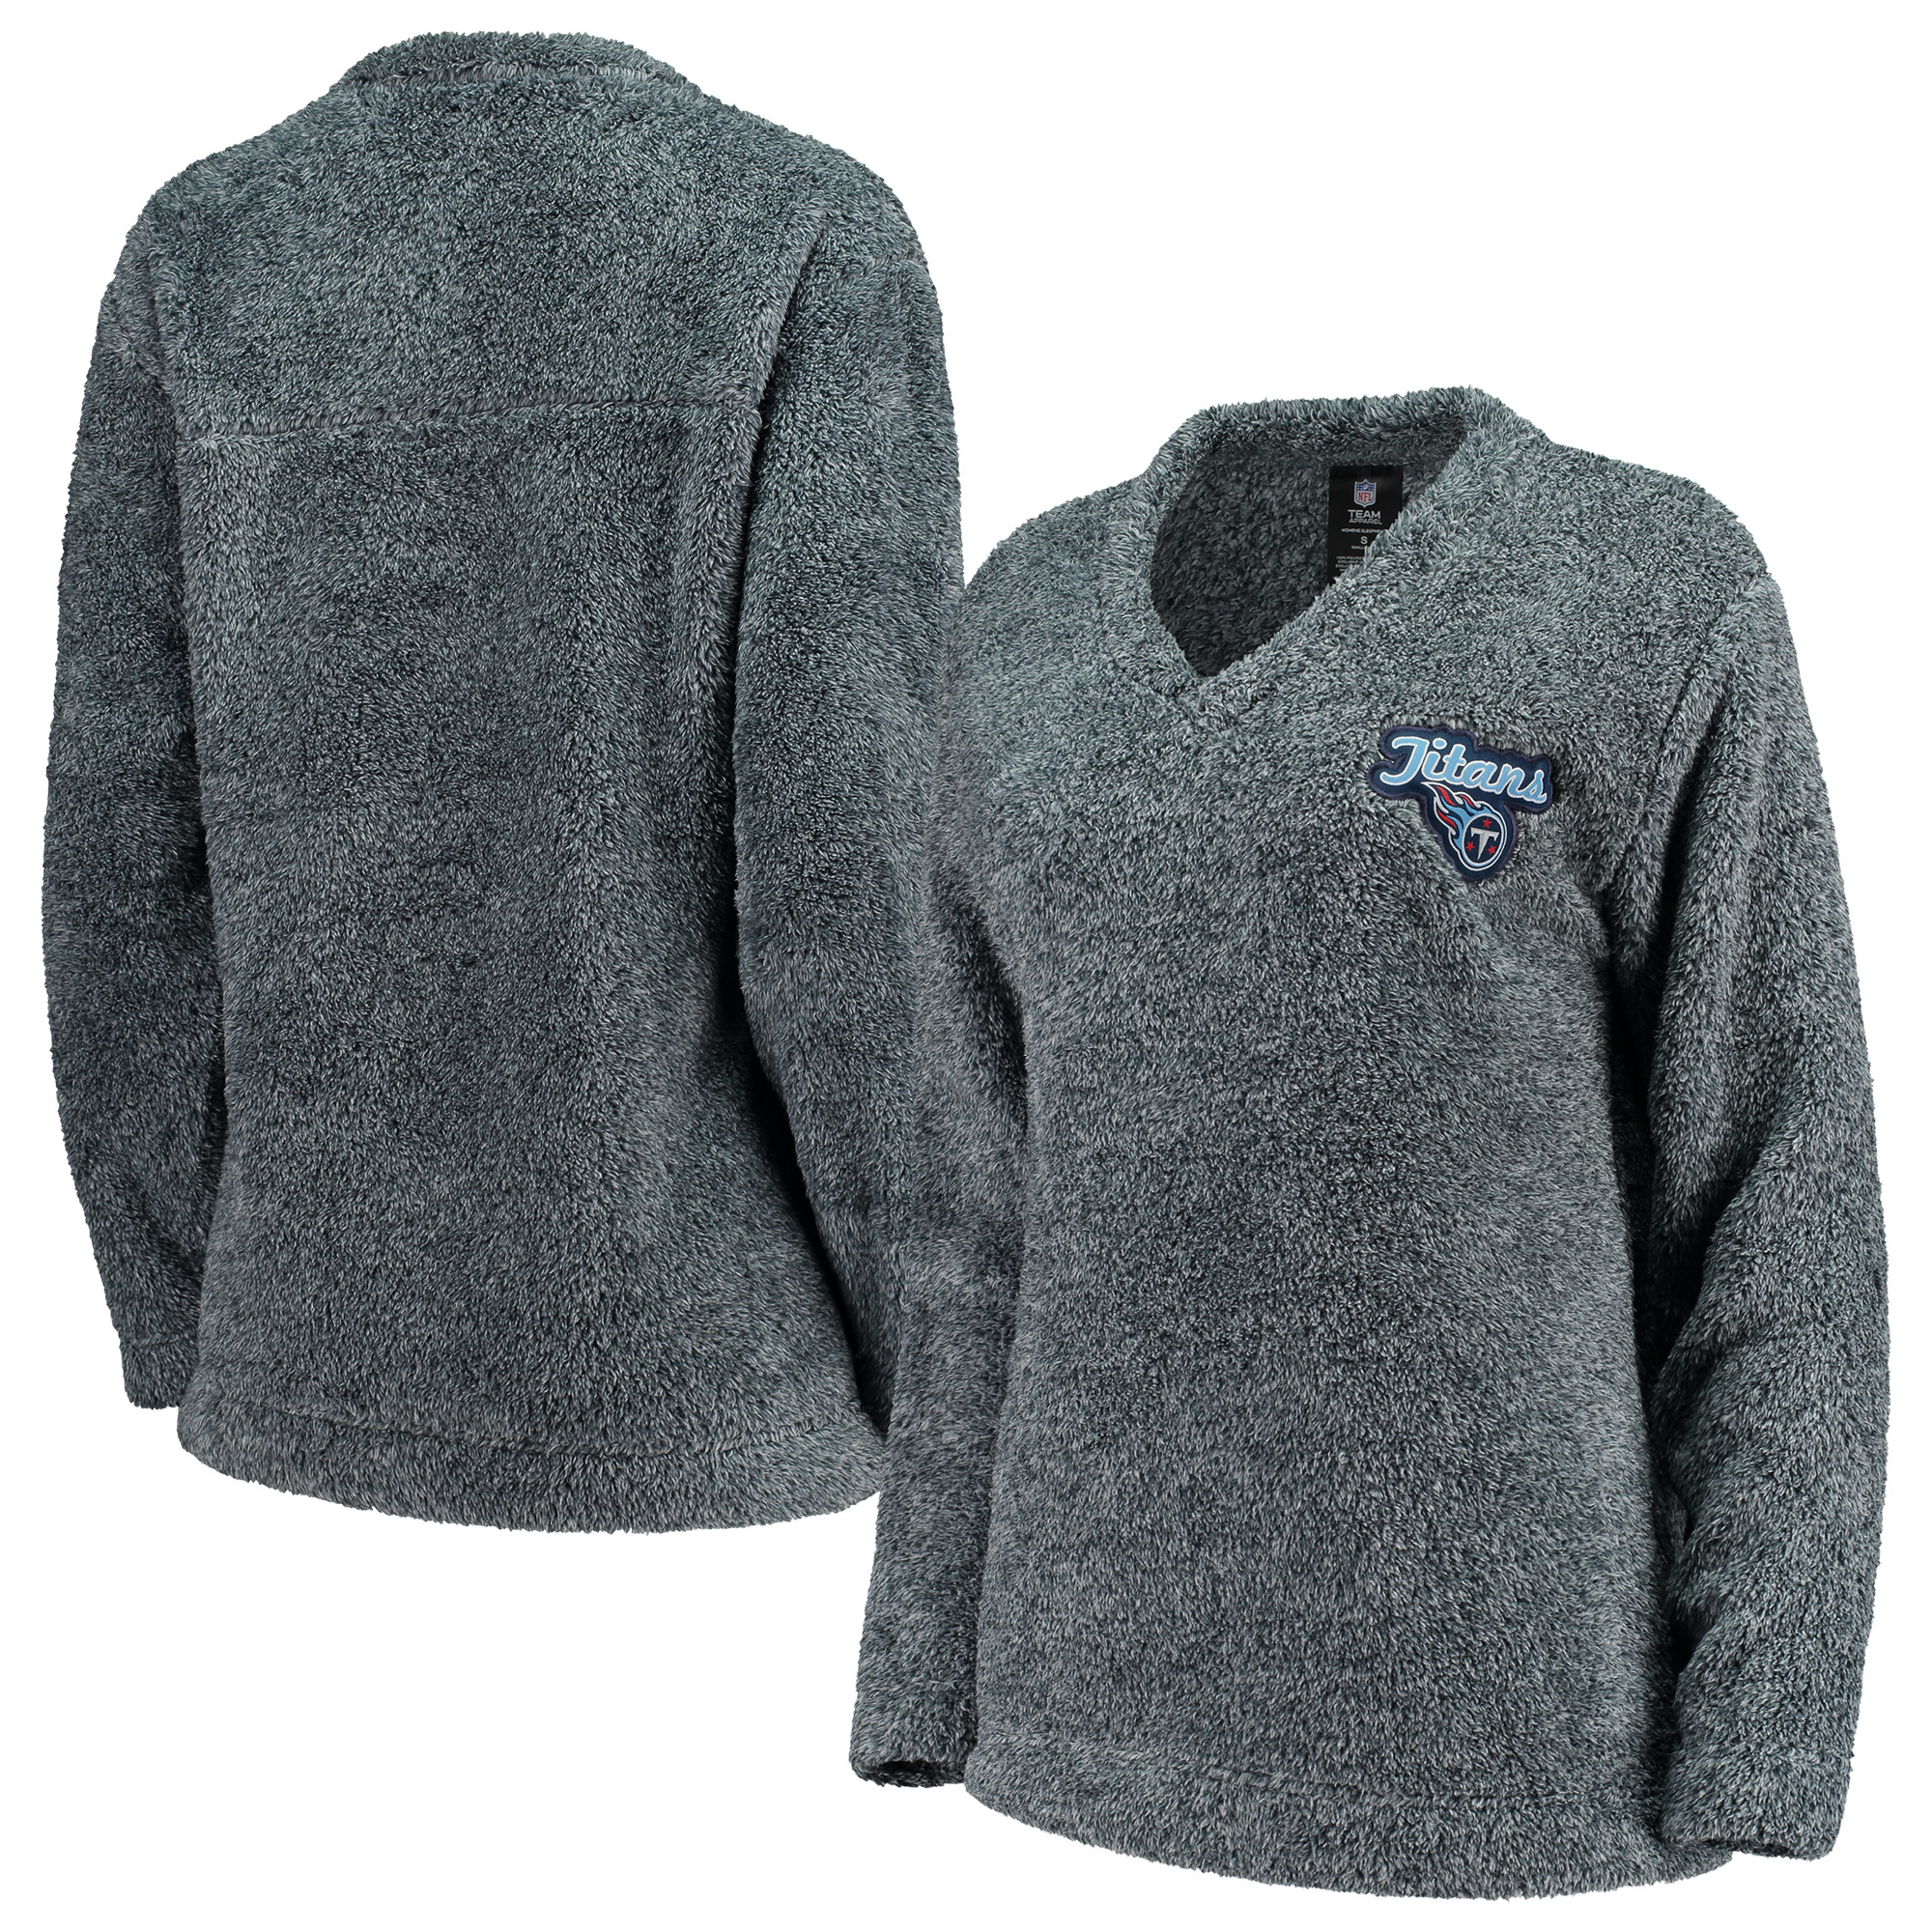 Tennessee Titans Concepts Sport Women's Trifecta Pullover Sweatshirt - Charcoal